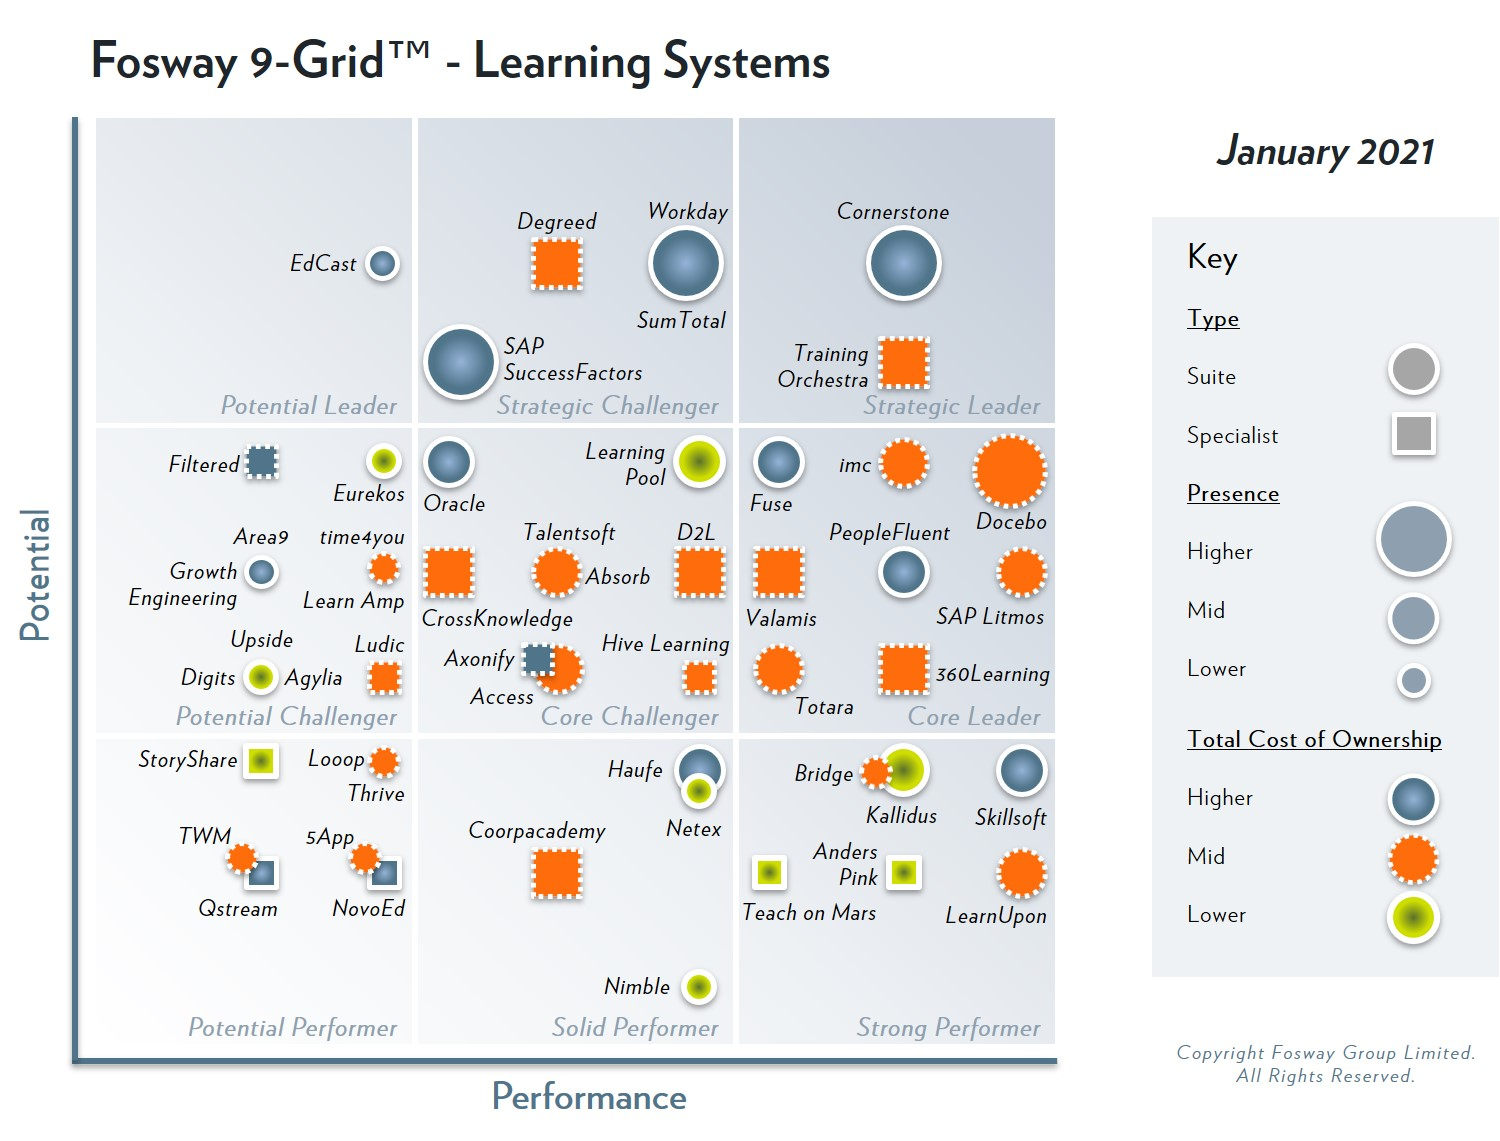 The Fosway 9-Grid™ for Learning Systems featuring Eurekos